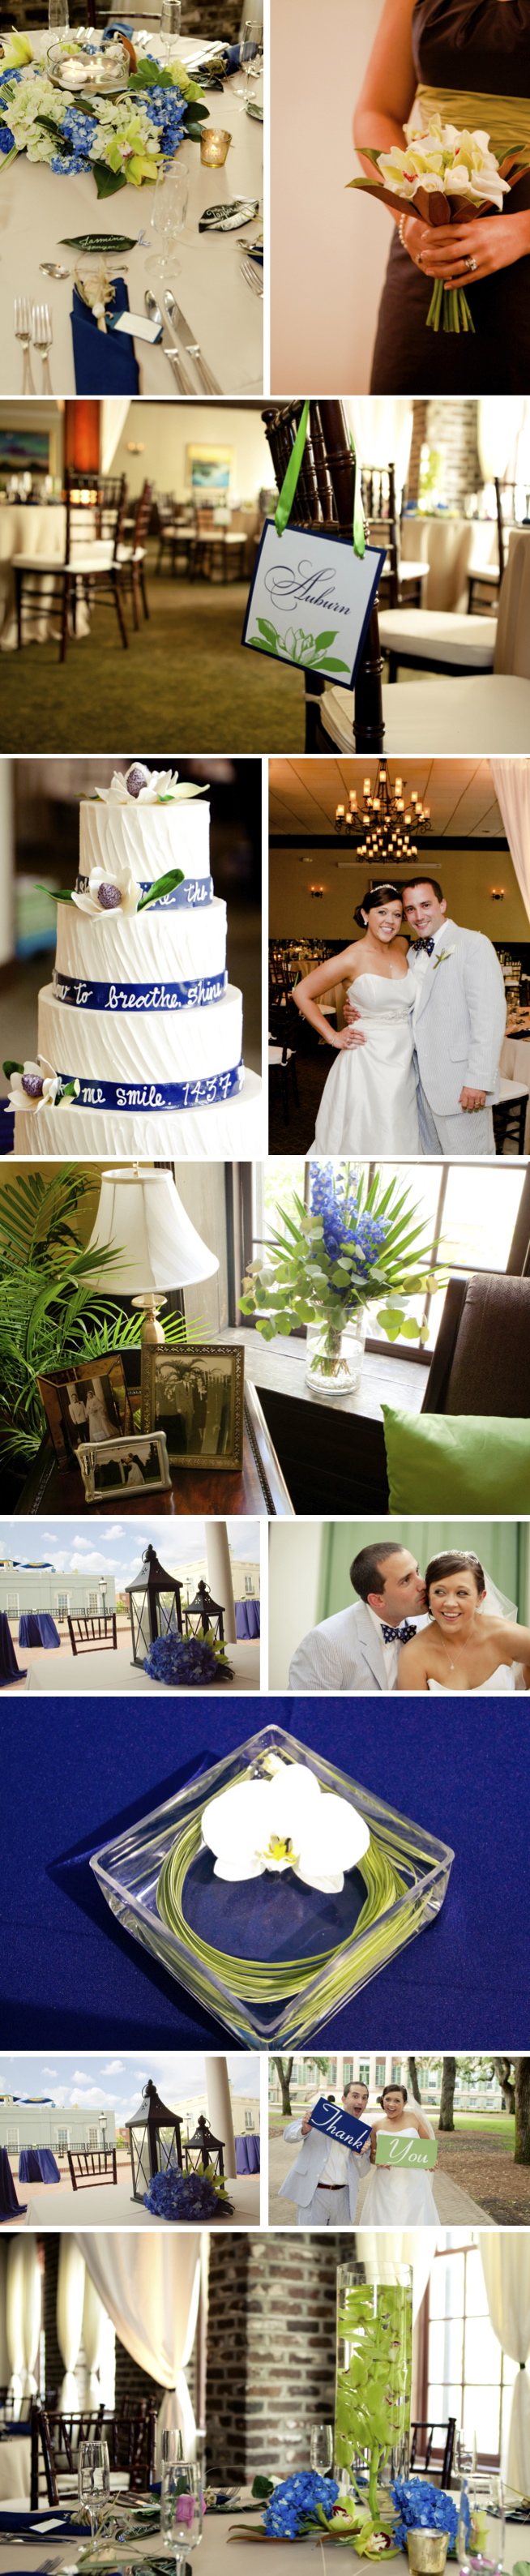 wedding blogs wedding ideas